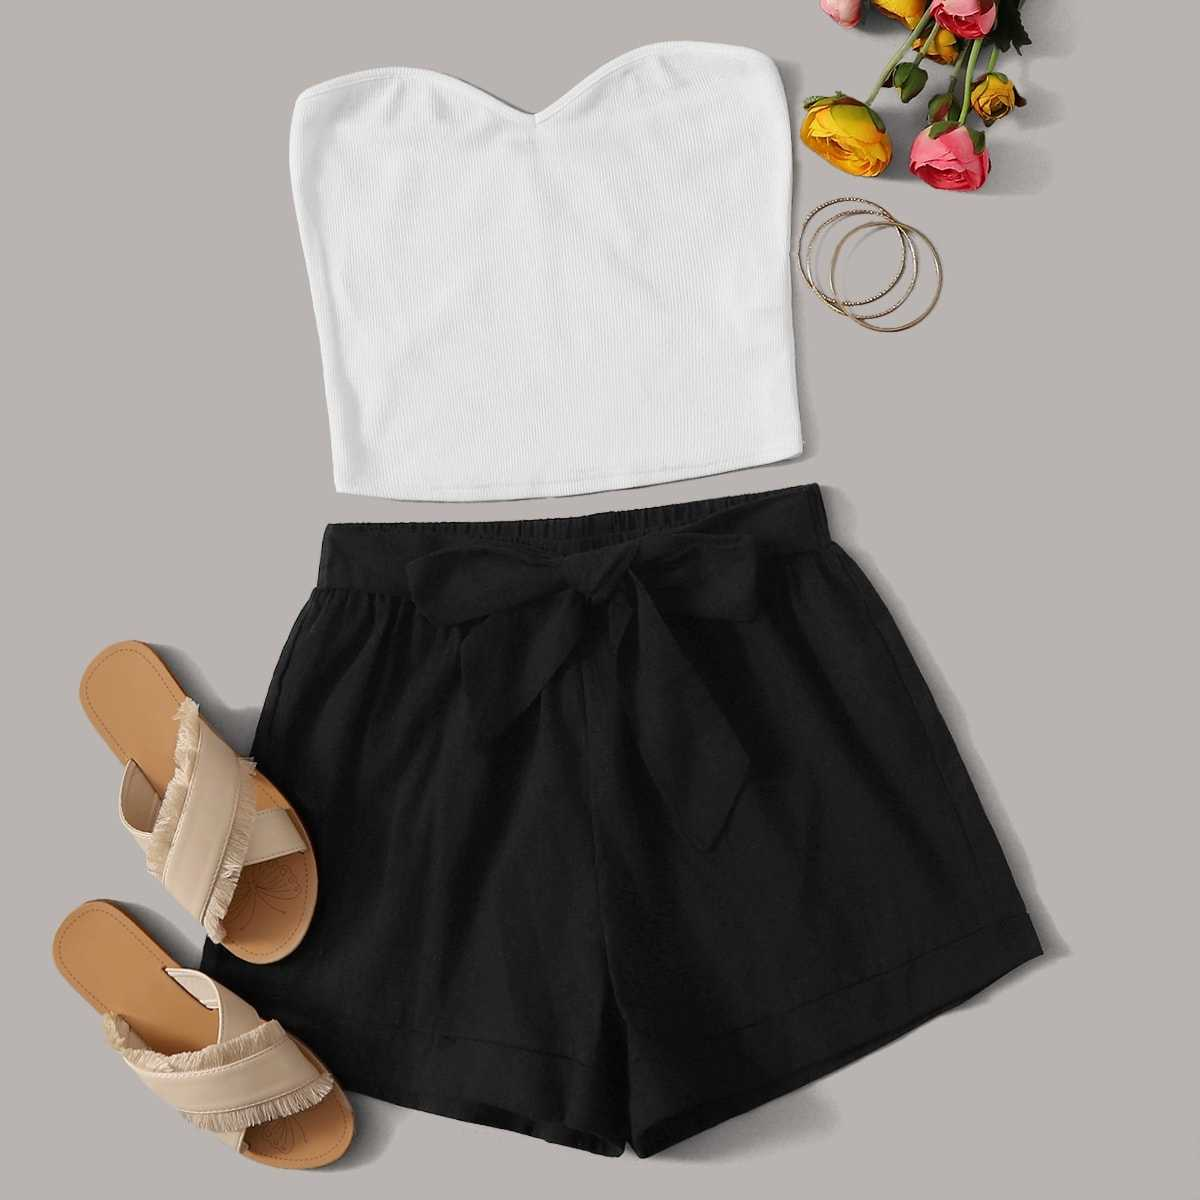 Solid Tube Top & Belted Shorts Set in Black and White by ROMWE on GOOFASH